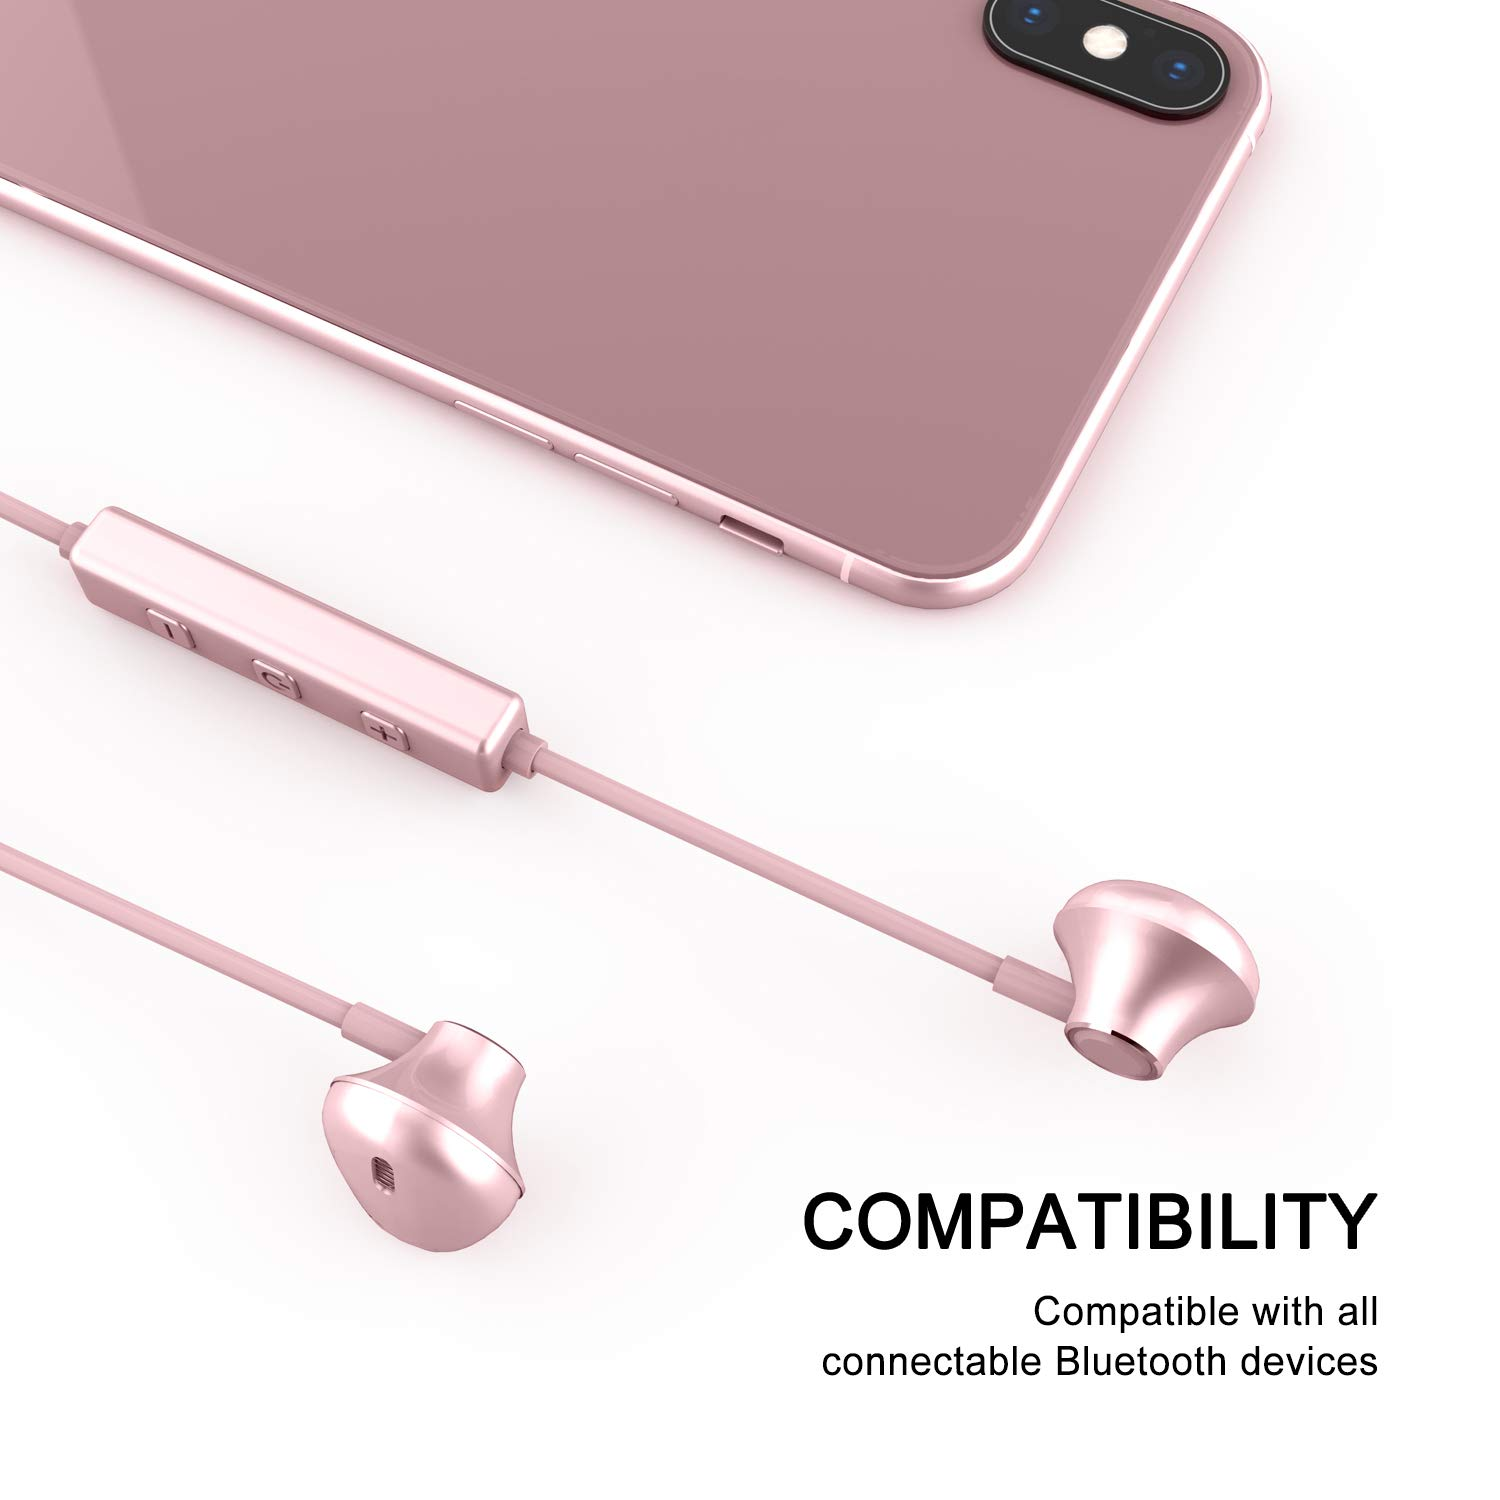 Bluetooth Headphones, Yostyle Magnetic Wireless Earbuds Bluetooth 5.0 Noise Canceling Earphones Sweatproof Sport Headset w/Mic for iPhone X/XR/XS/8/7/6 Plus, Galaxy S9/S8,10 Hrs Work Time(Rose Gold)